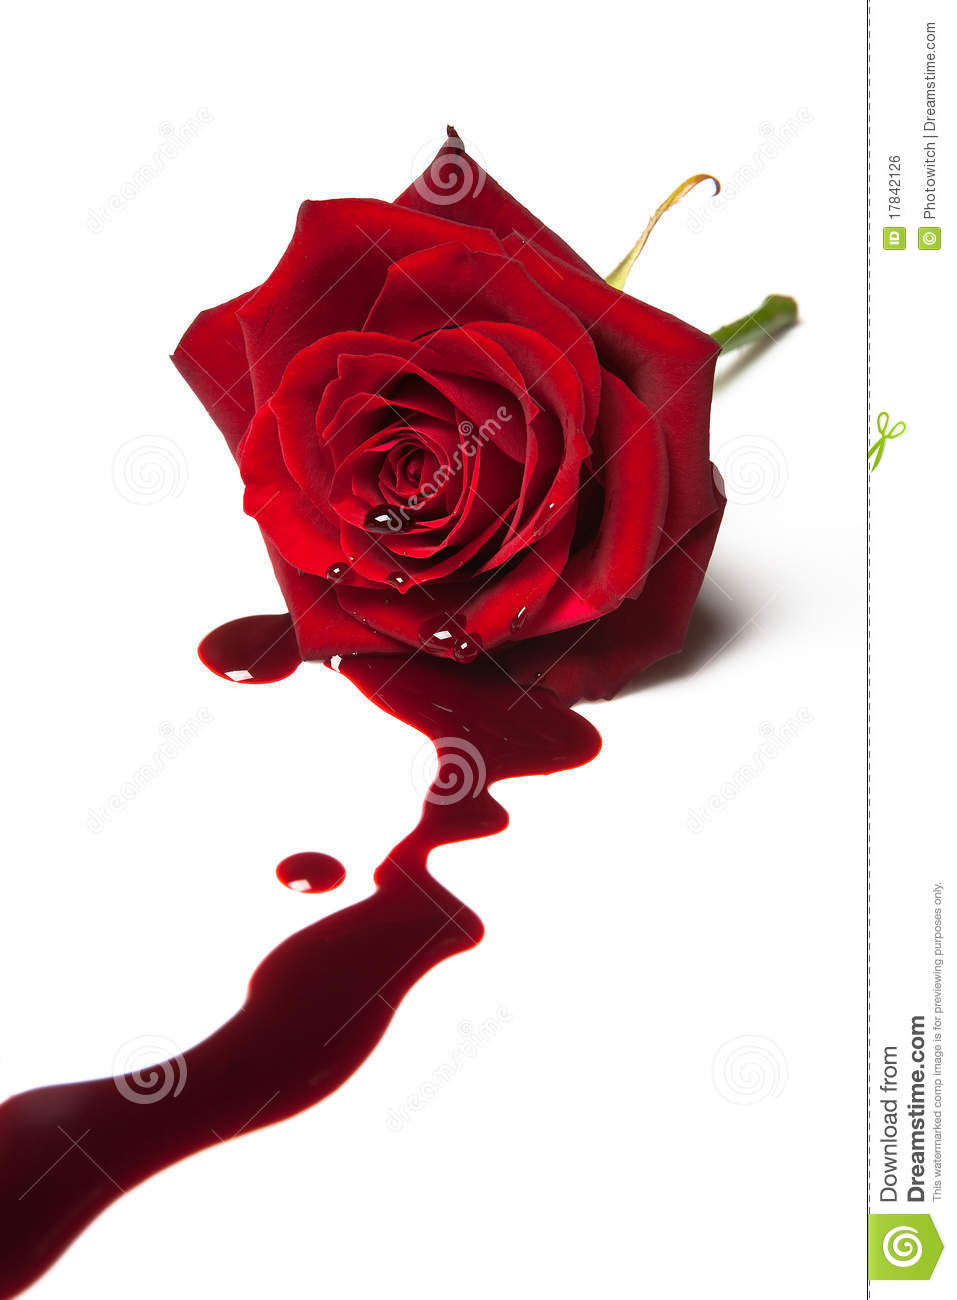 Bleeding Rose Royalty Free Stock Image - Image: 17842126 Cyber Bullying Clipart